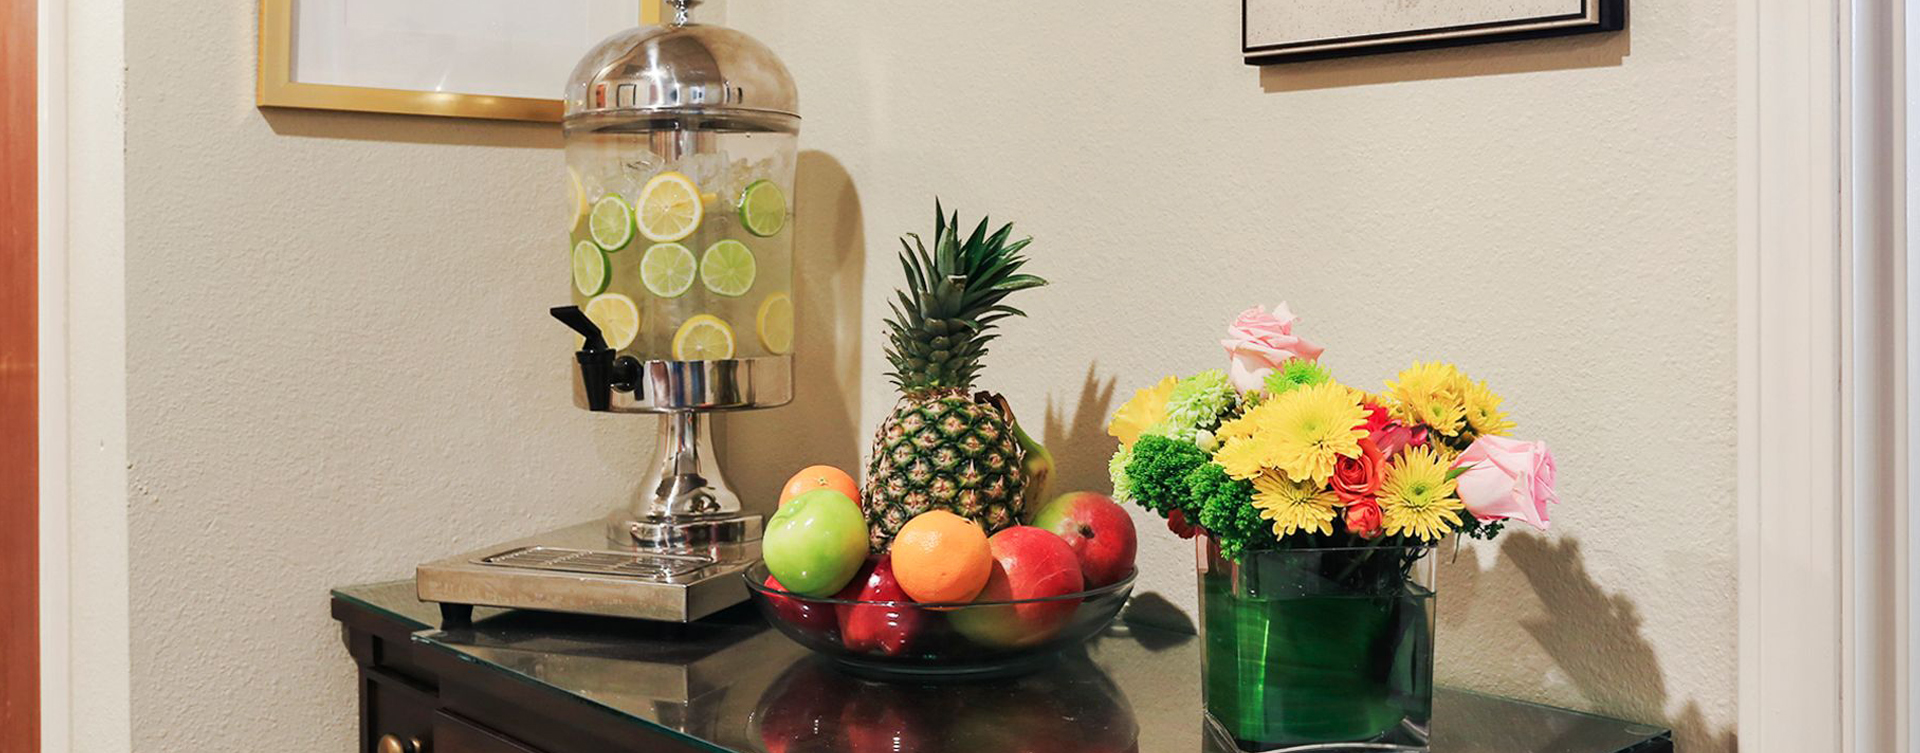 We're serving up snacks, beverages and service around the clock in the bistro at Bickford of Champaign